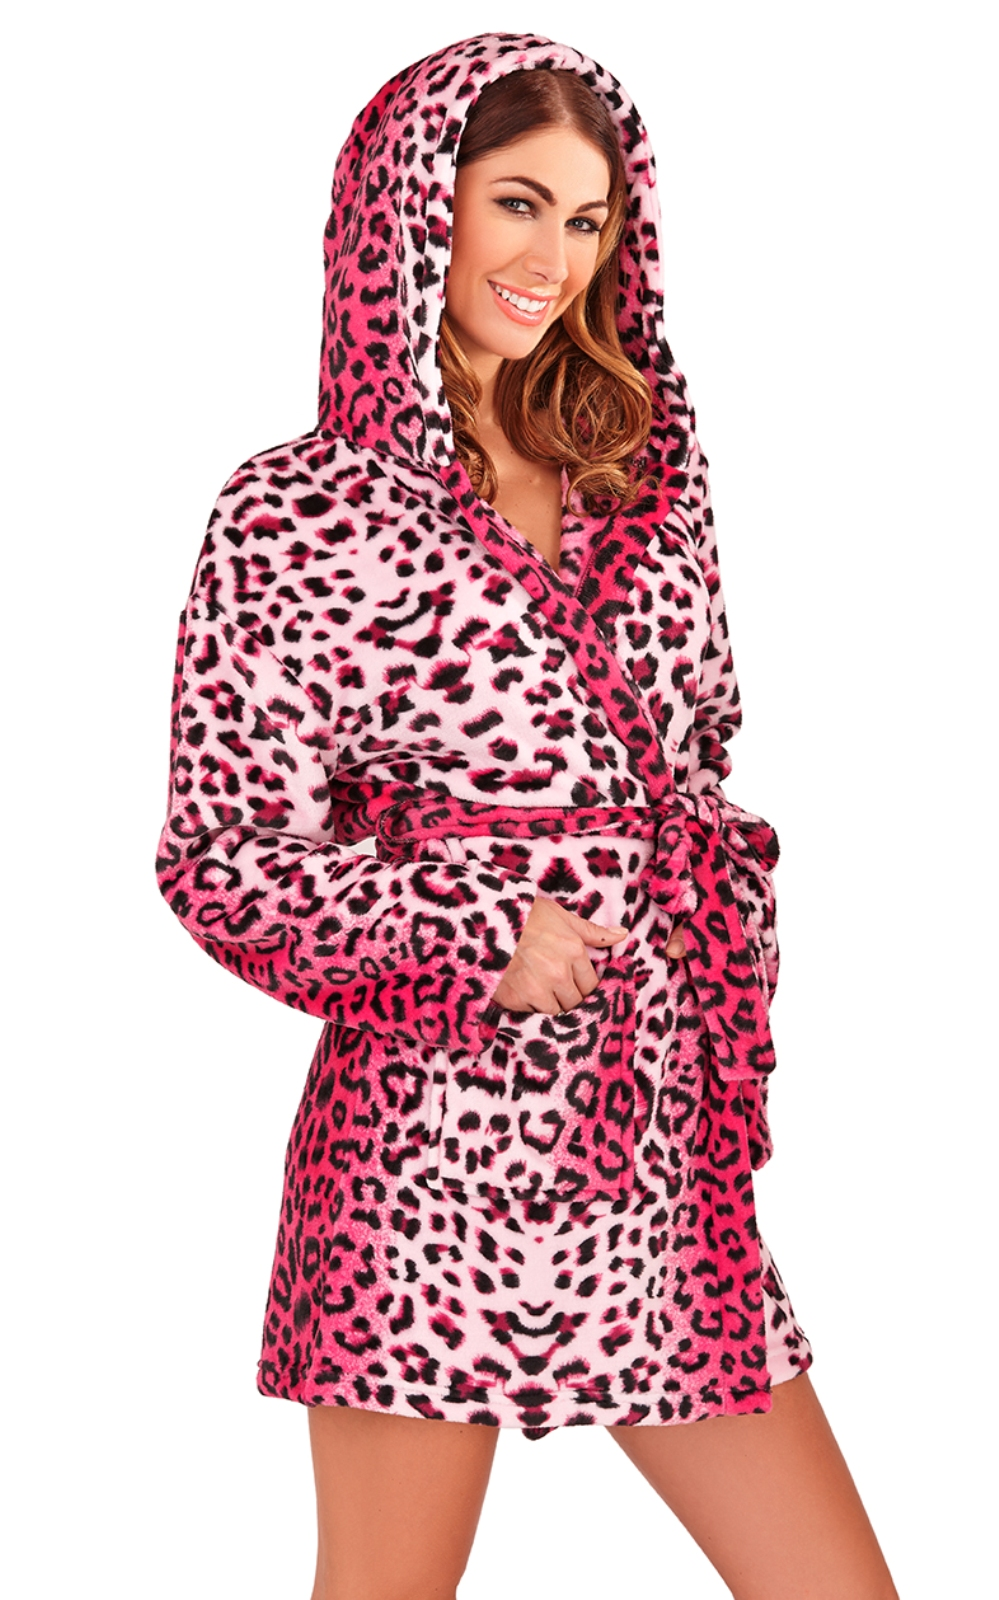 Details about Womens Short Hooded Dressing Gown Bath Robe Housecoat + Belt Ladies Size UK 6-16